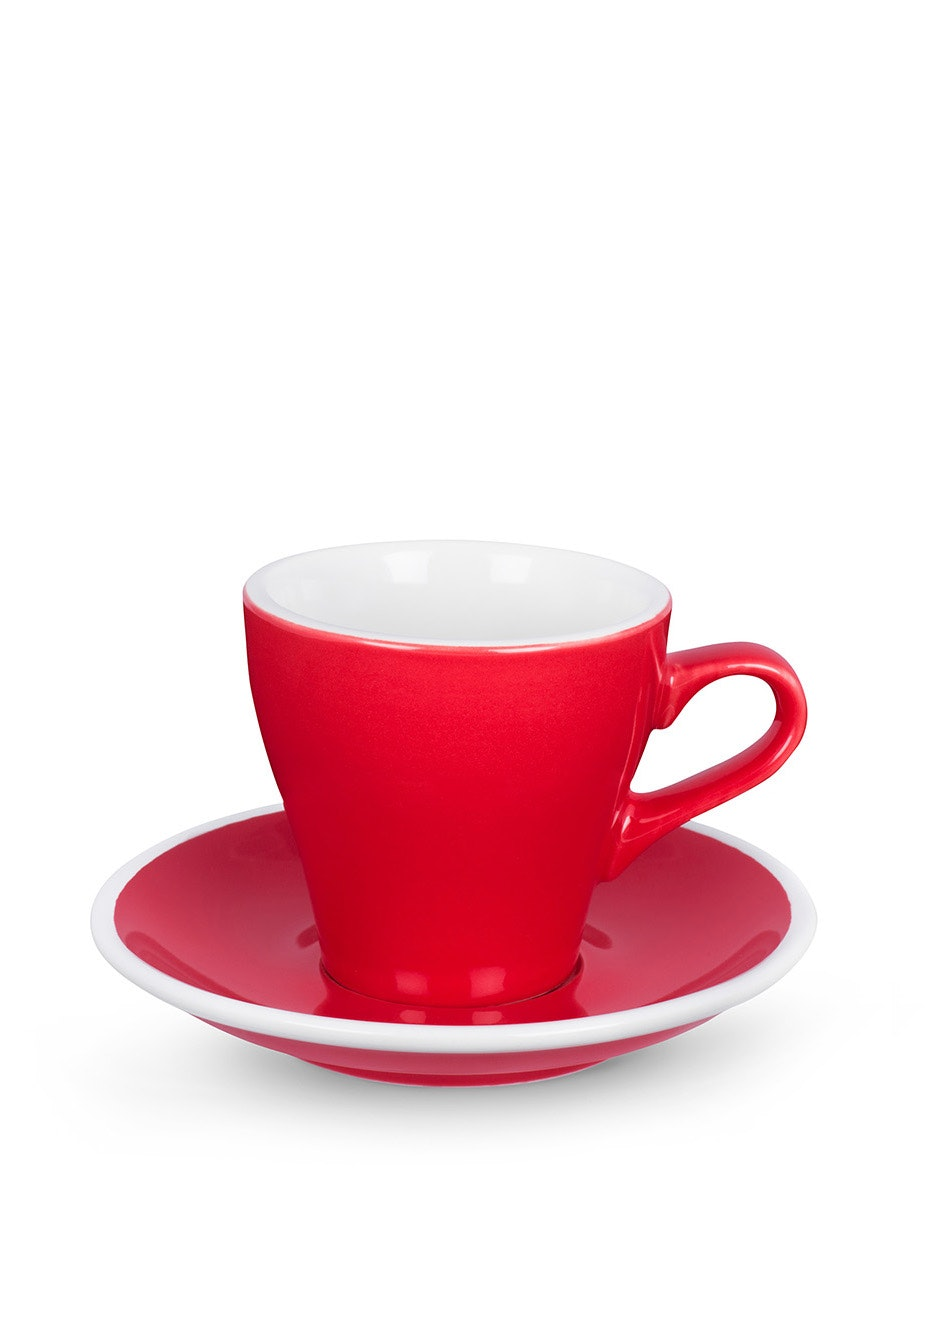 ACME Pack of 6 - Tulip Cup & Saucer 170ml - Red